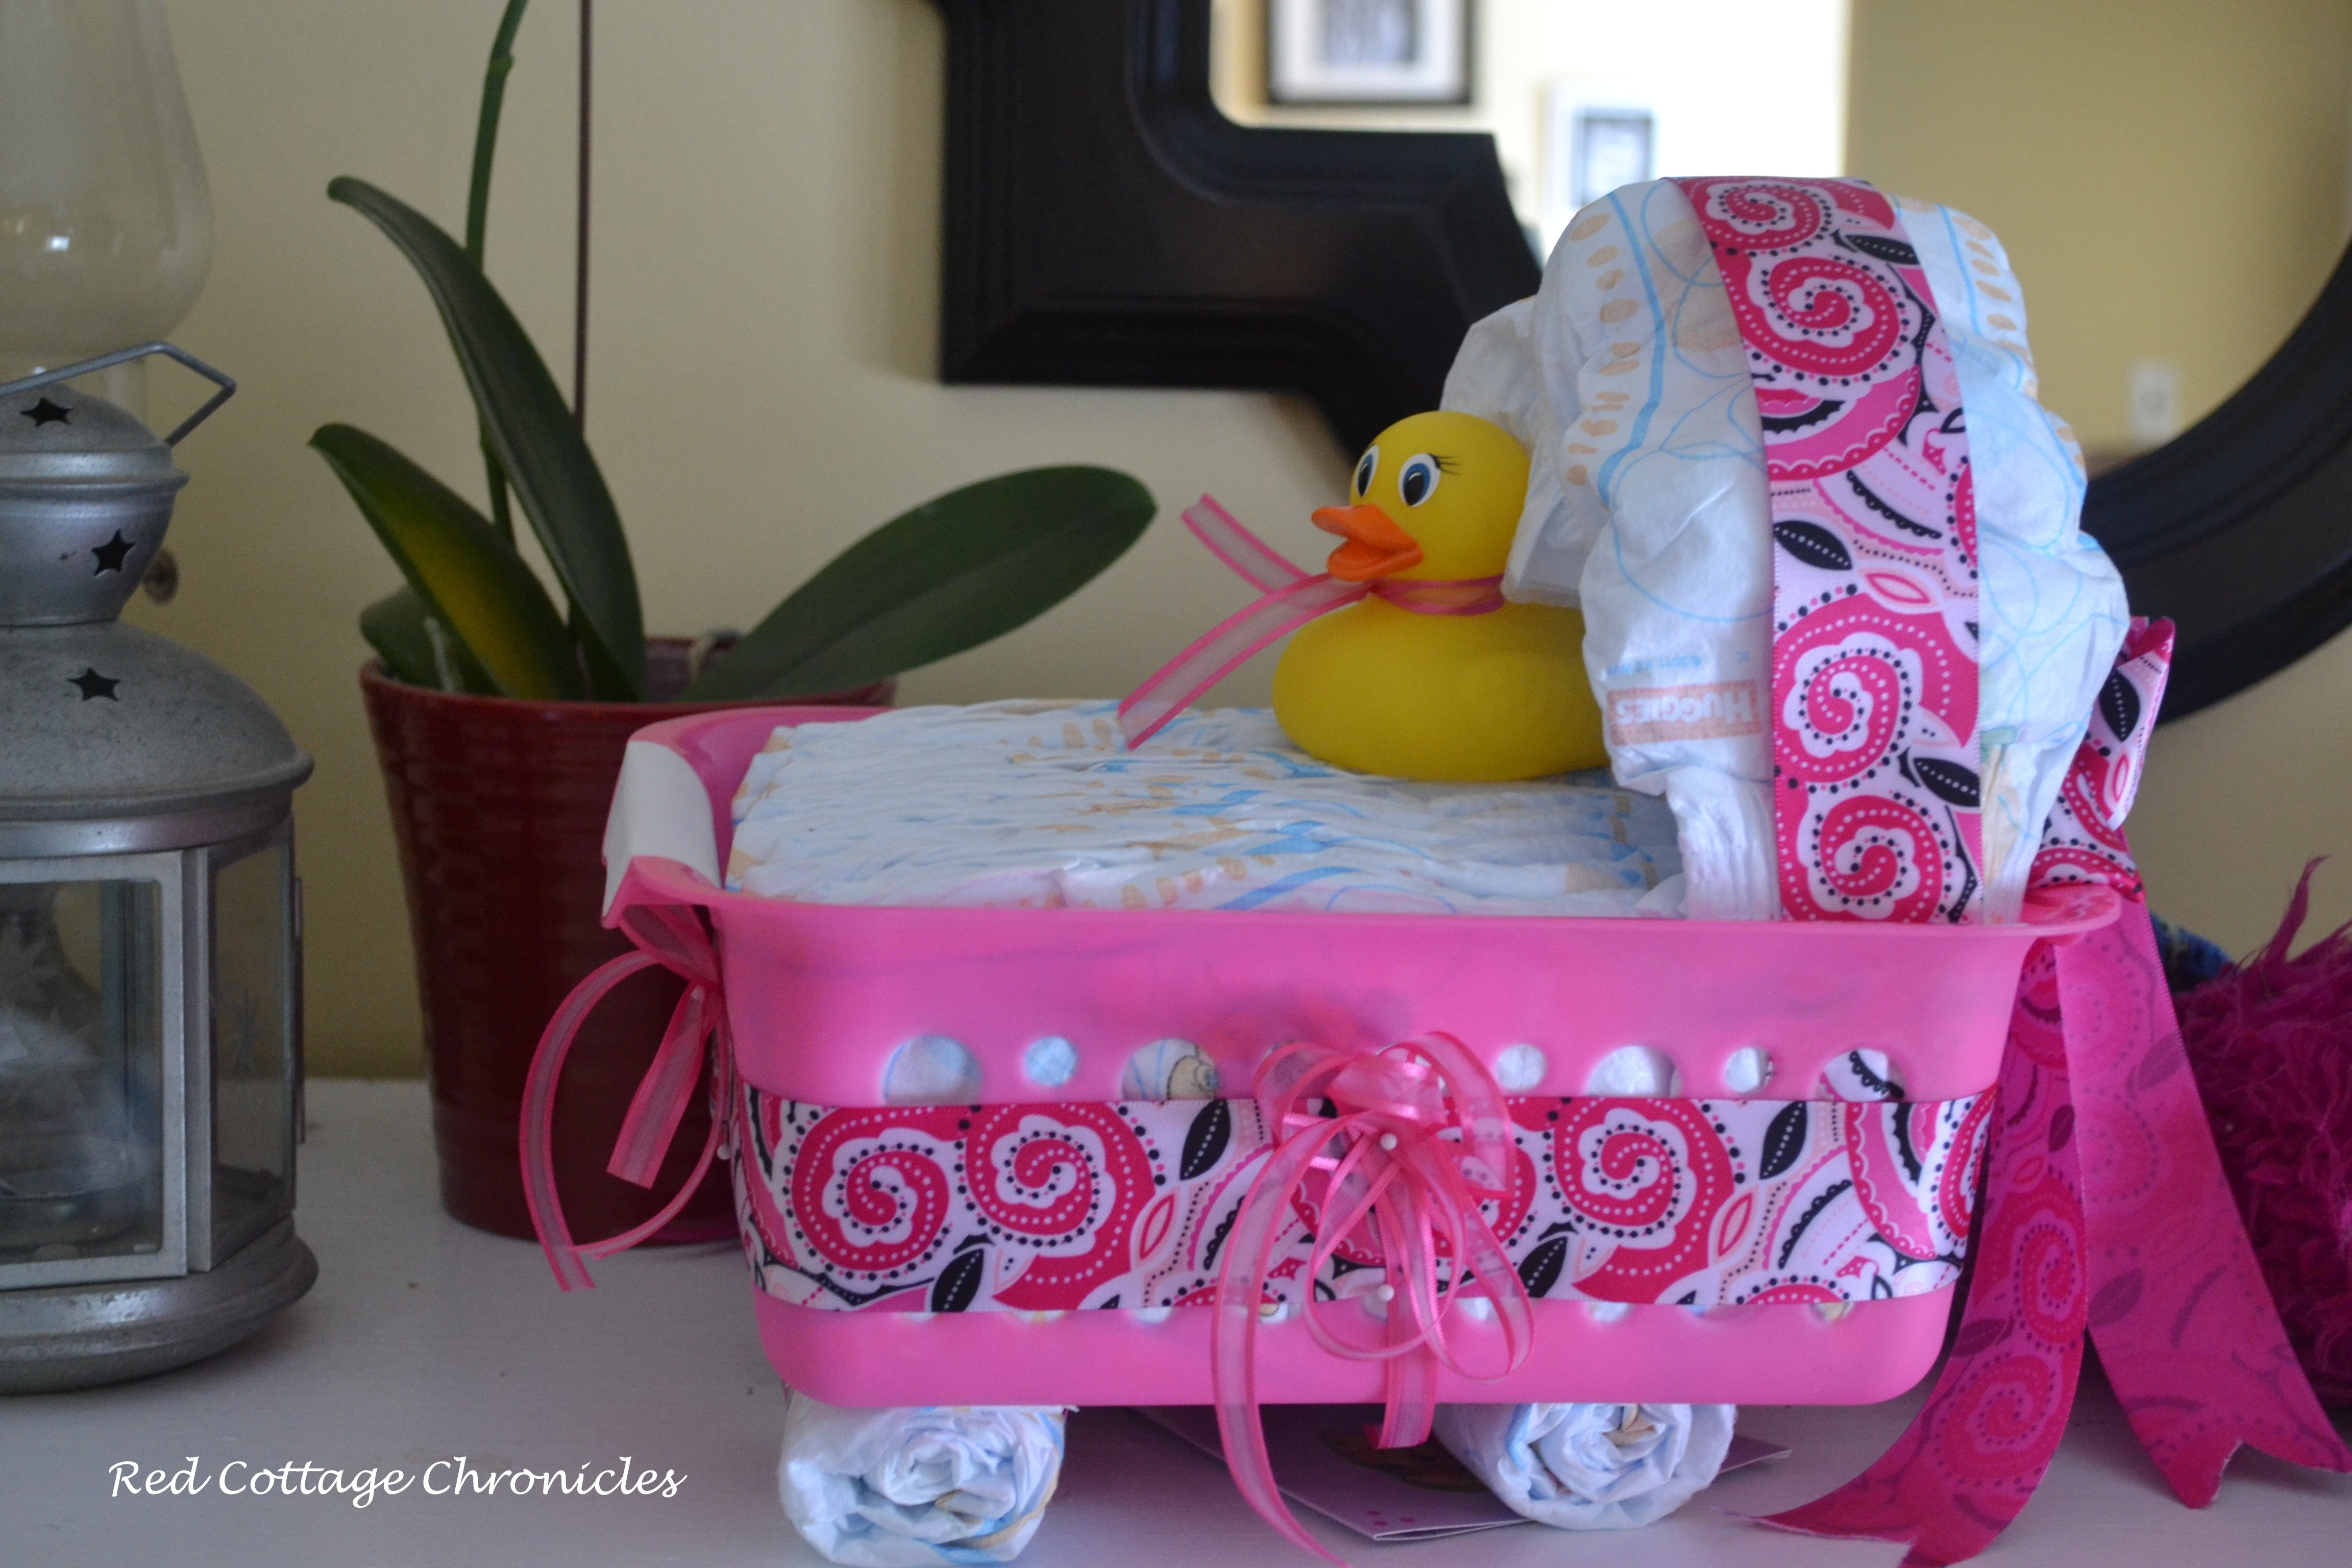 10 Ideal Cute Ideas For Baby Shower Gifts awesomeaby shower gift ideas for girl impressive pregnant mom froobi 2020